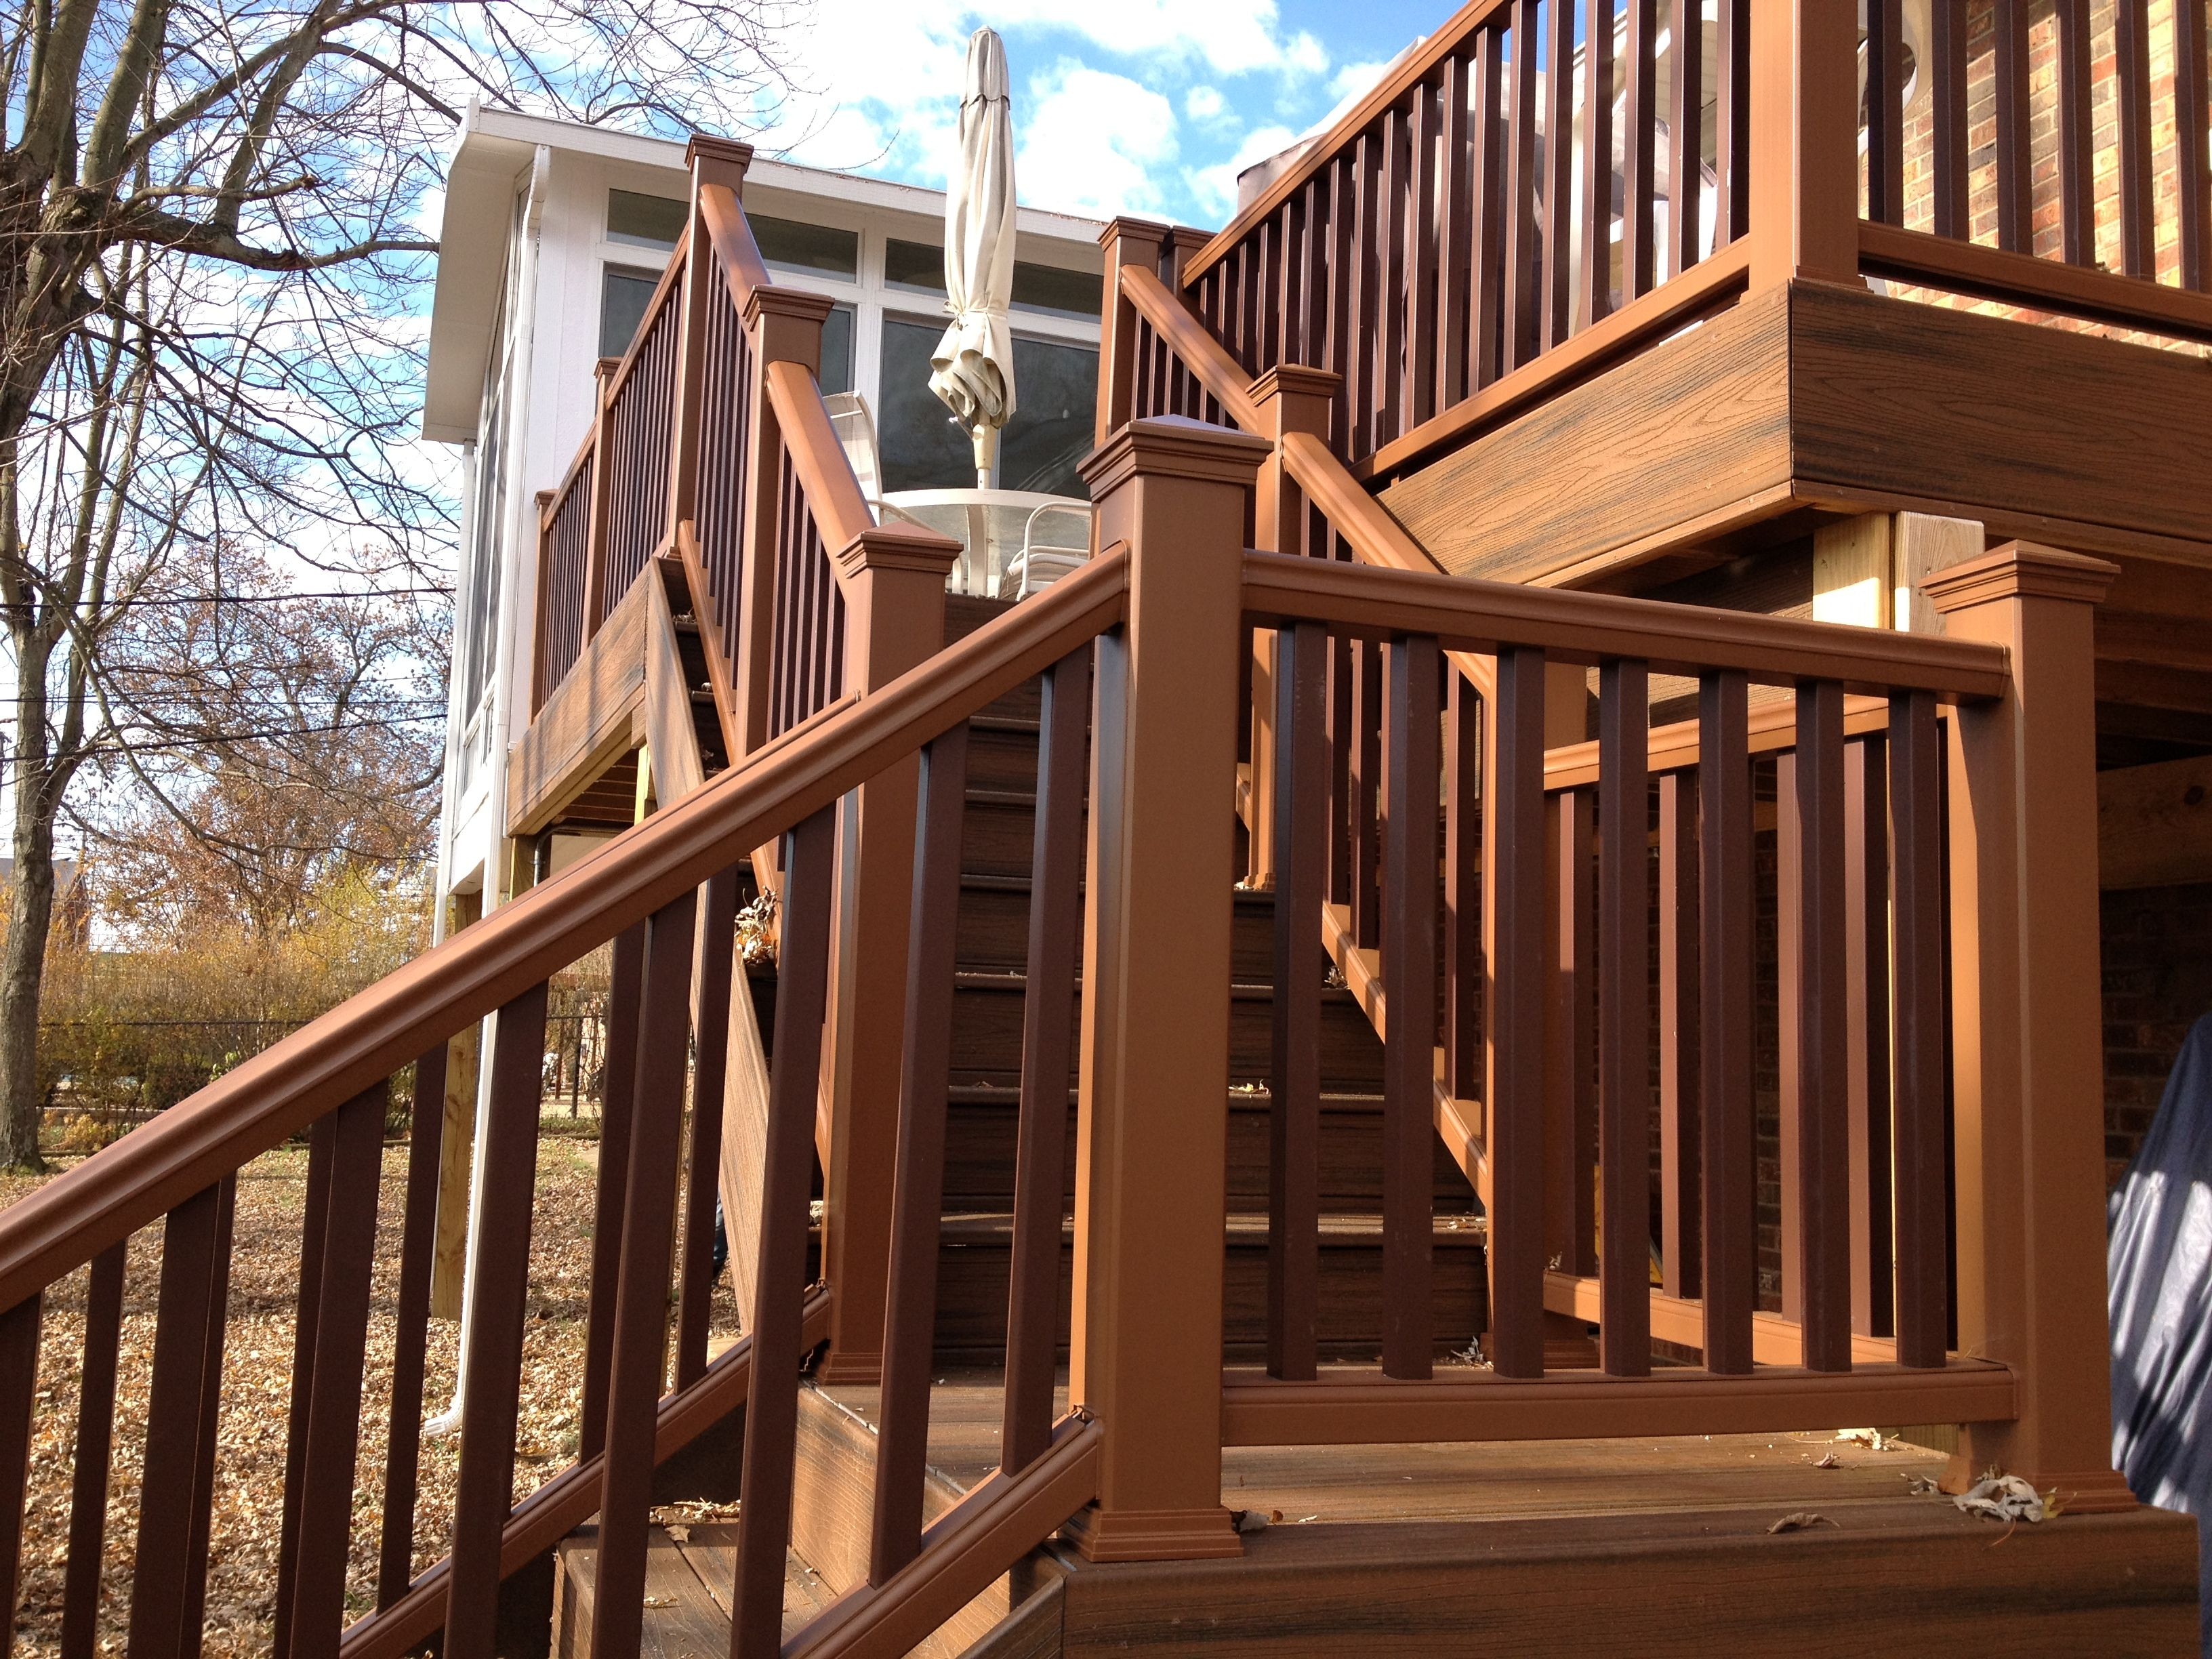 Best Tree House Rails With Lava Rock Railings And Vintage 400 x 300